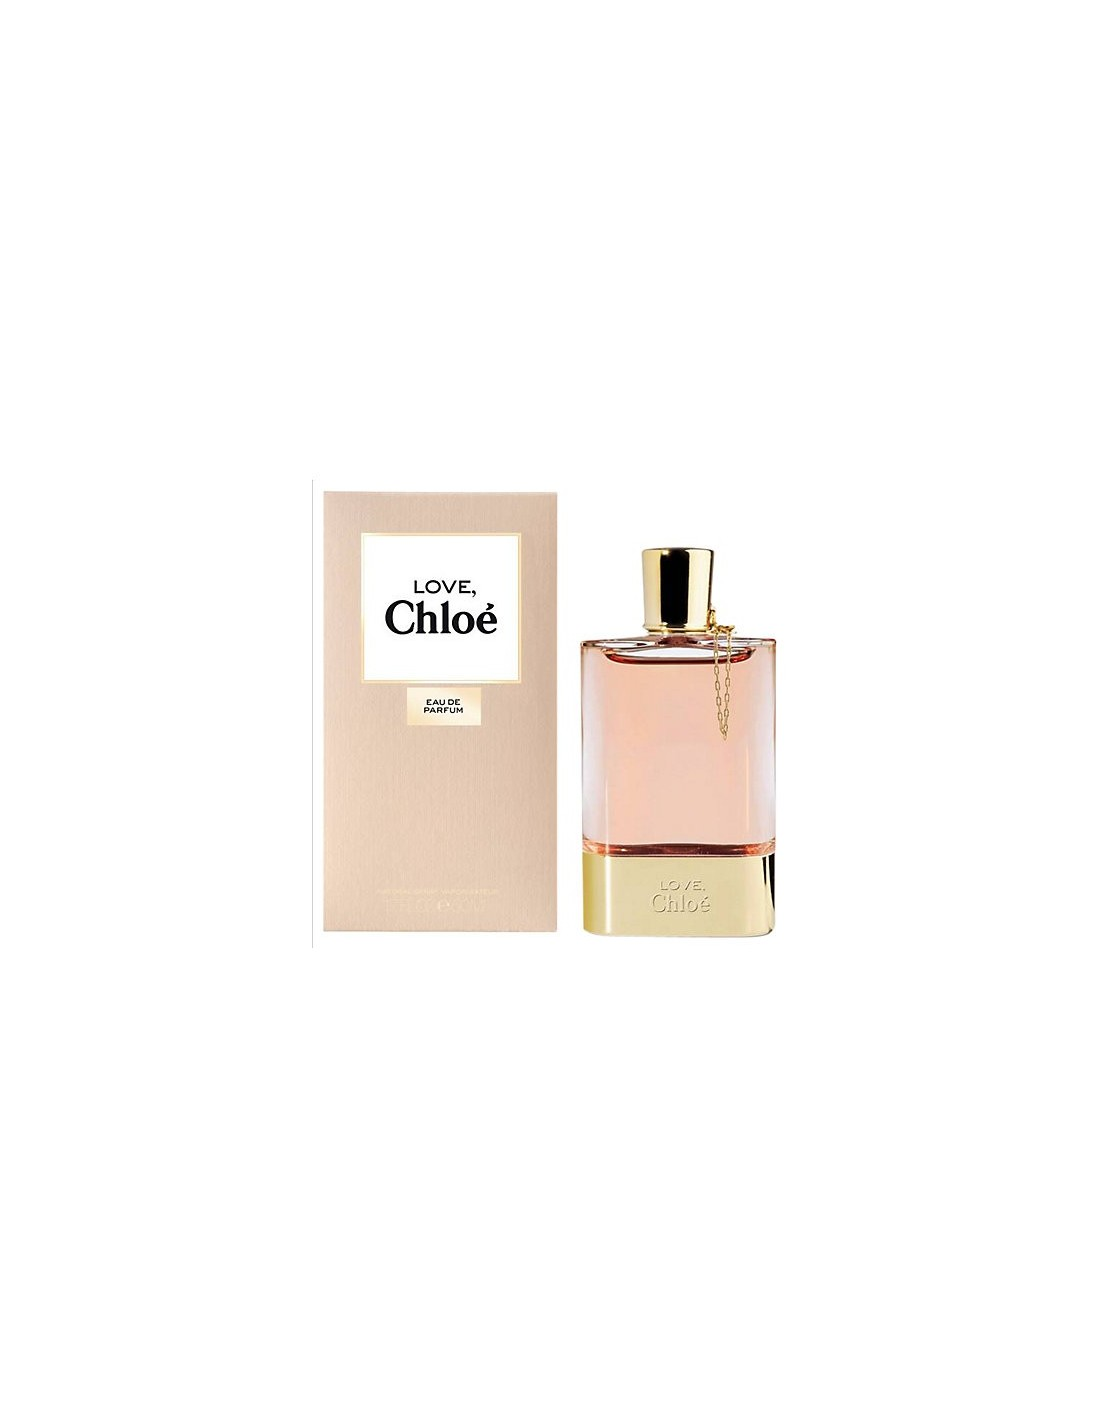 chloe 39 love eau de parfum 50 ml spray azzurra profumi. Black Bedroom Furniture Sets. Home Design Ideas